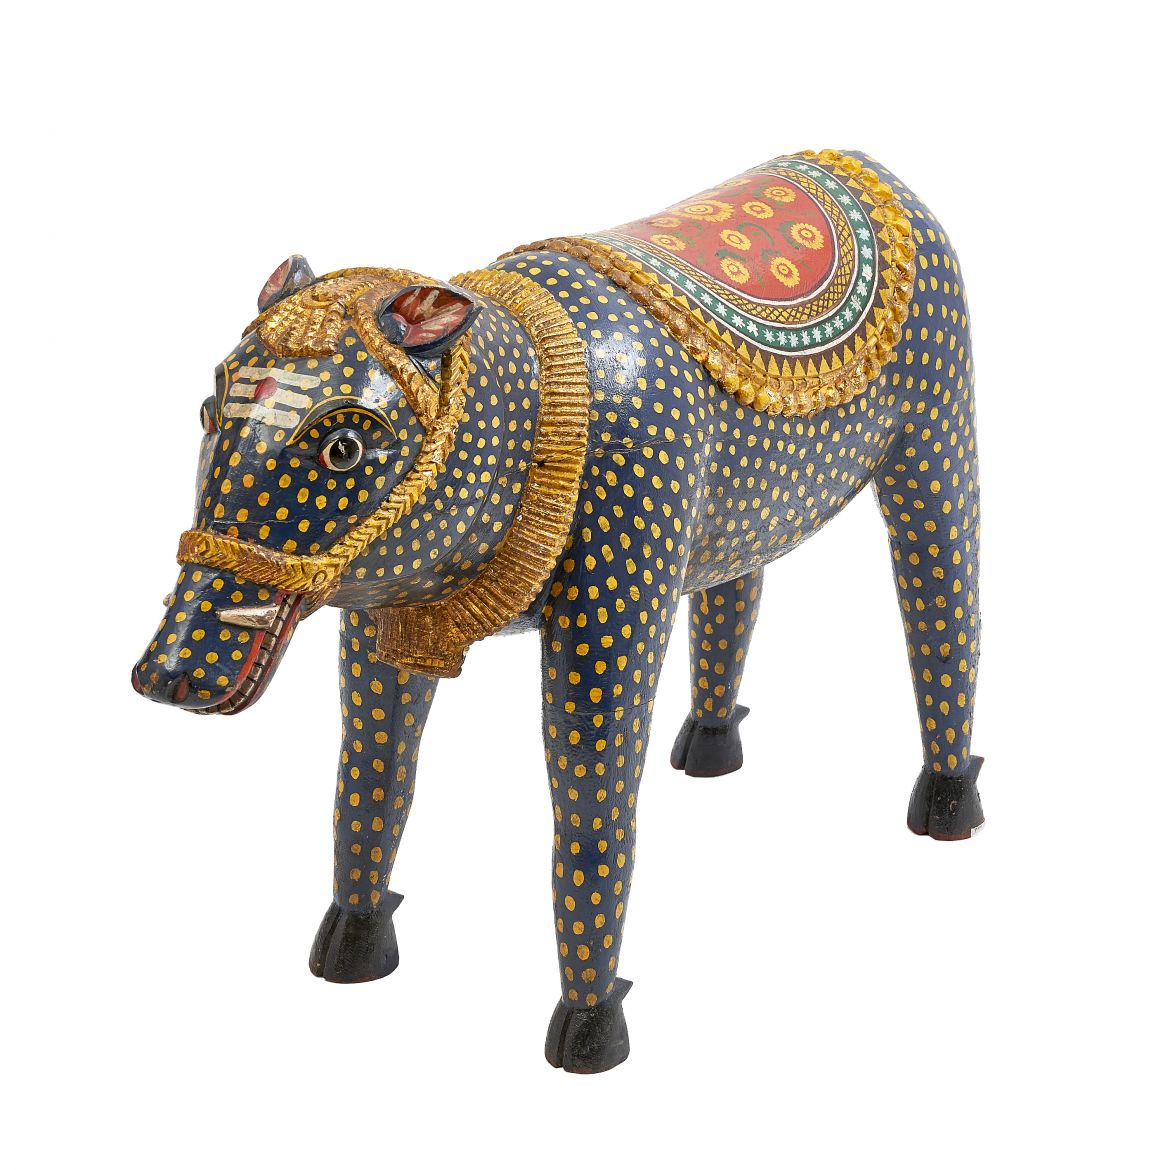 Ceremonial Painted Boar